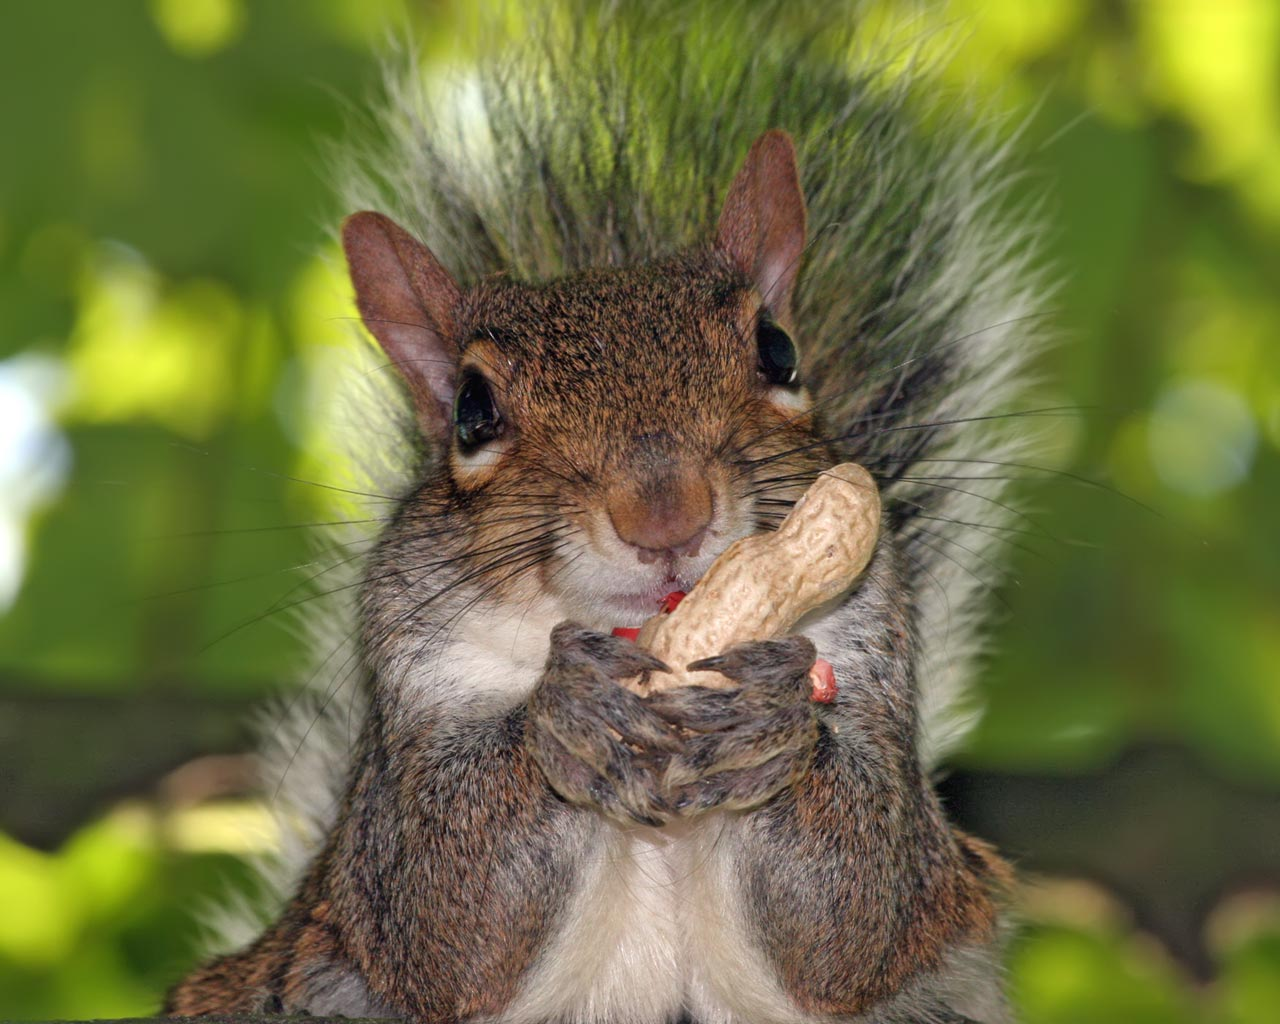 Desktop hd wallpapers - Funny squirrel backgrounds ...